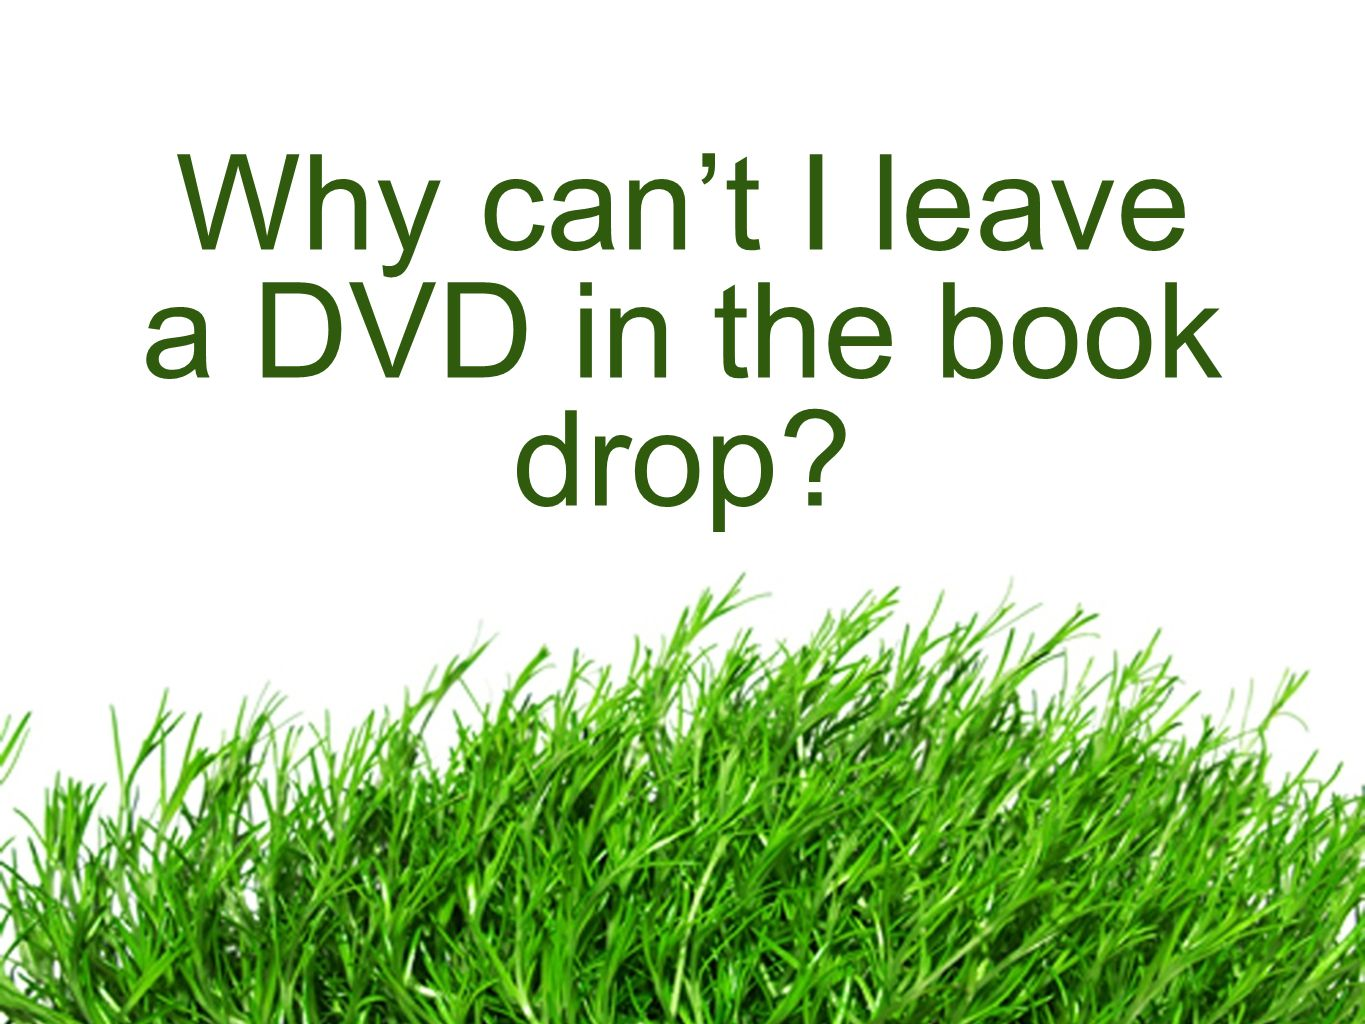 Why can't I leave a DVD in the book drop?